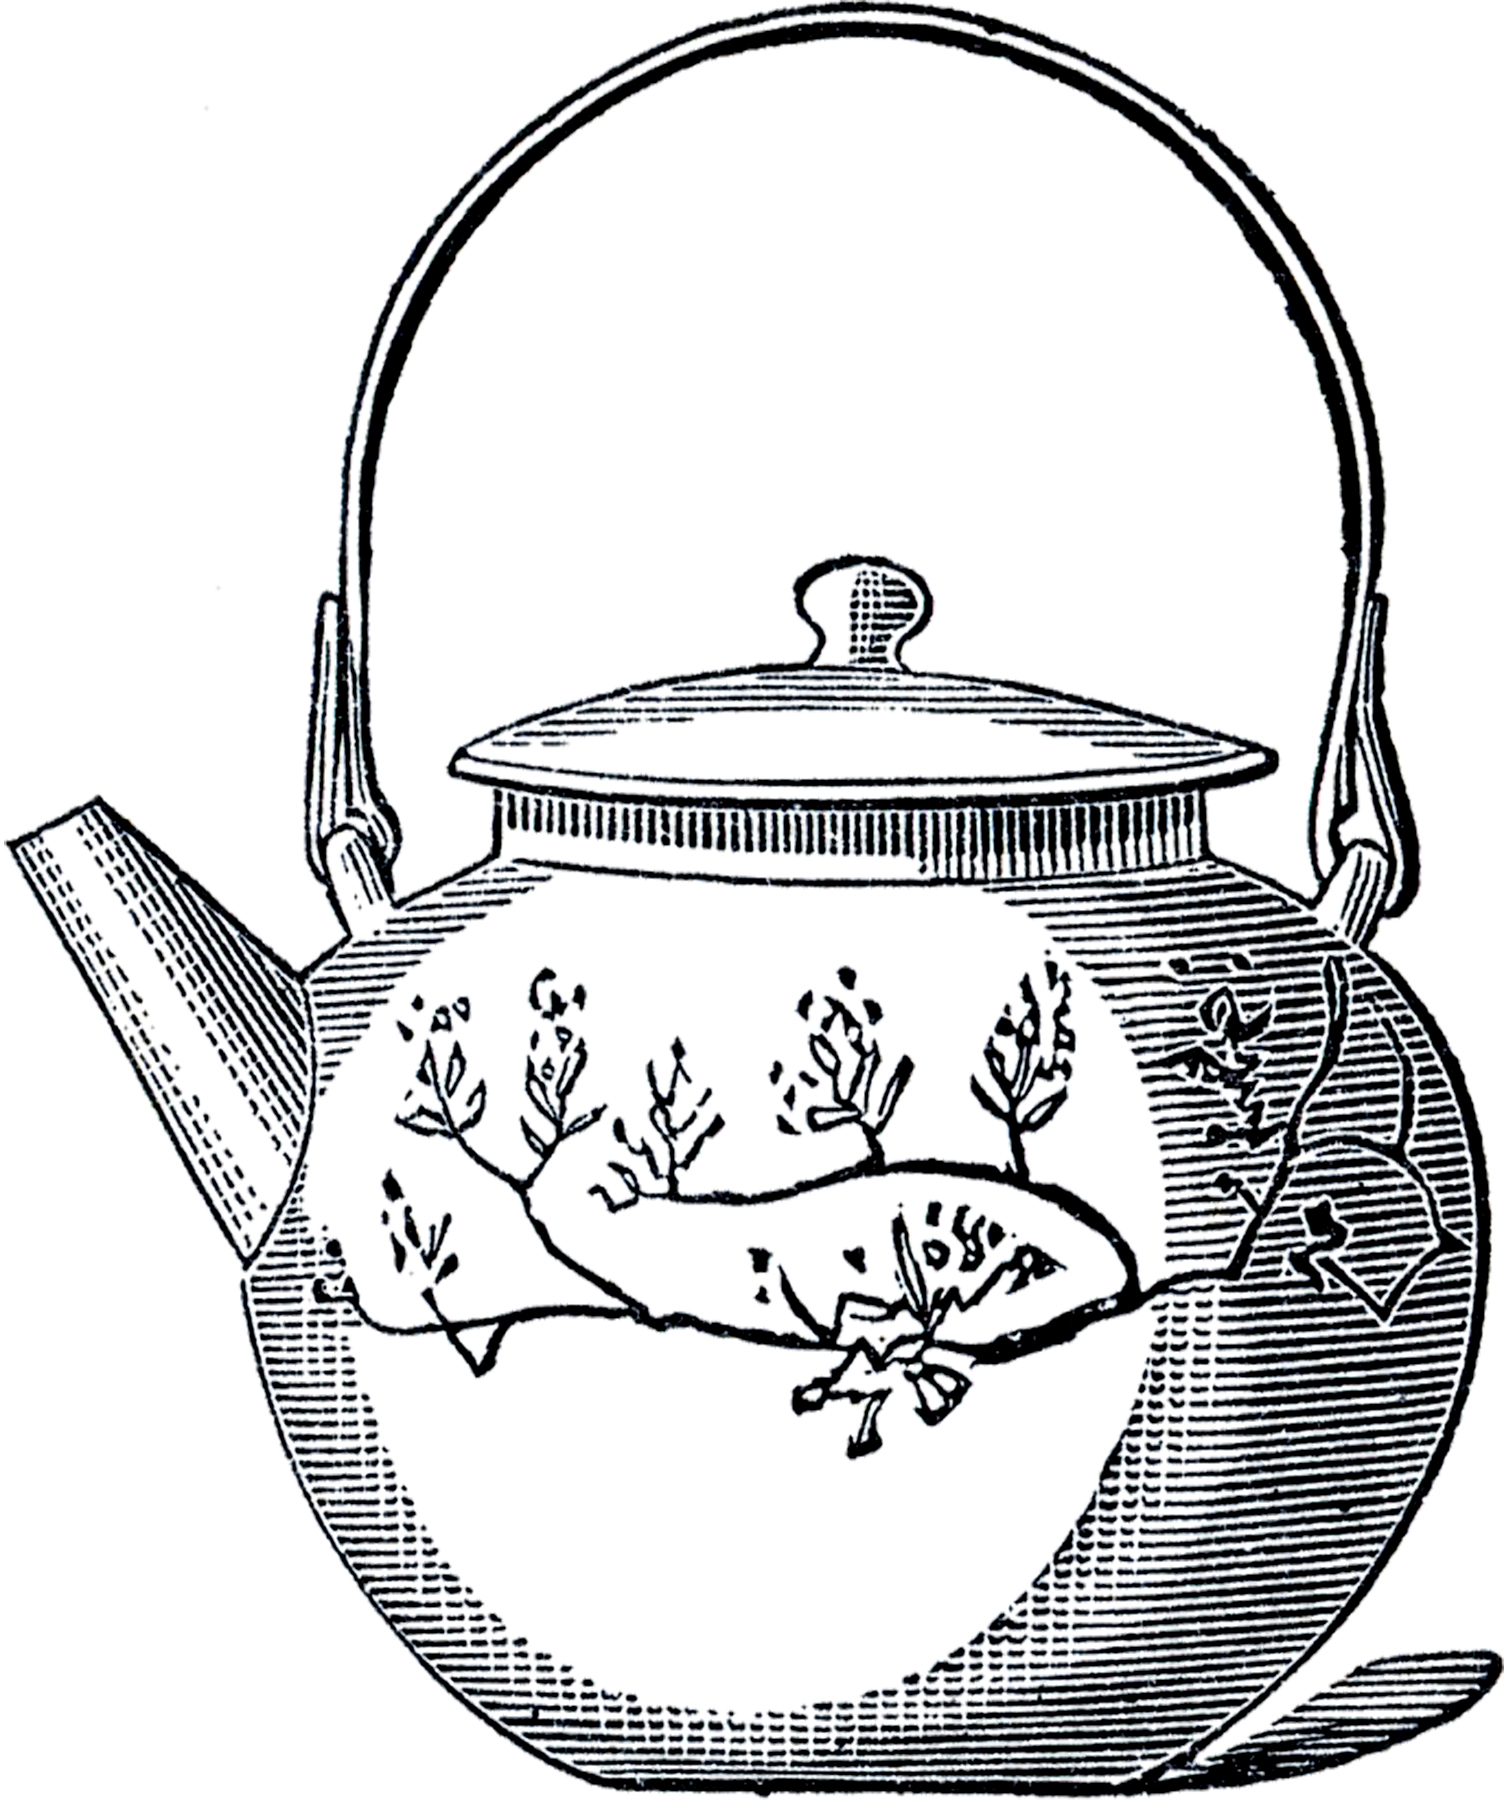 Vintage Asian Teapot Image The Graphics Fairy